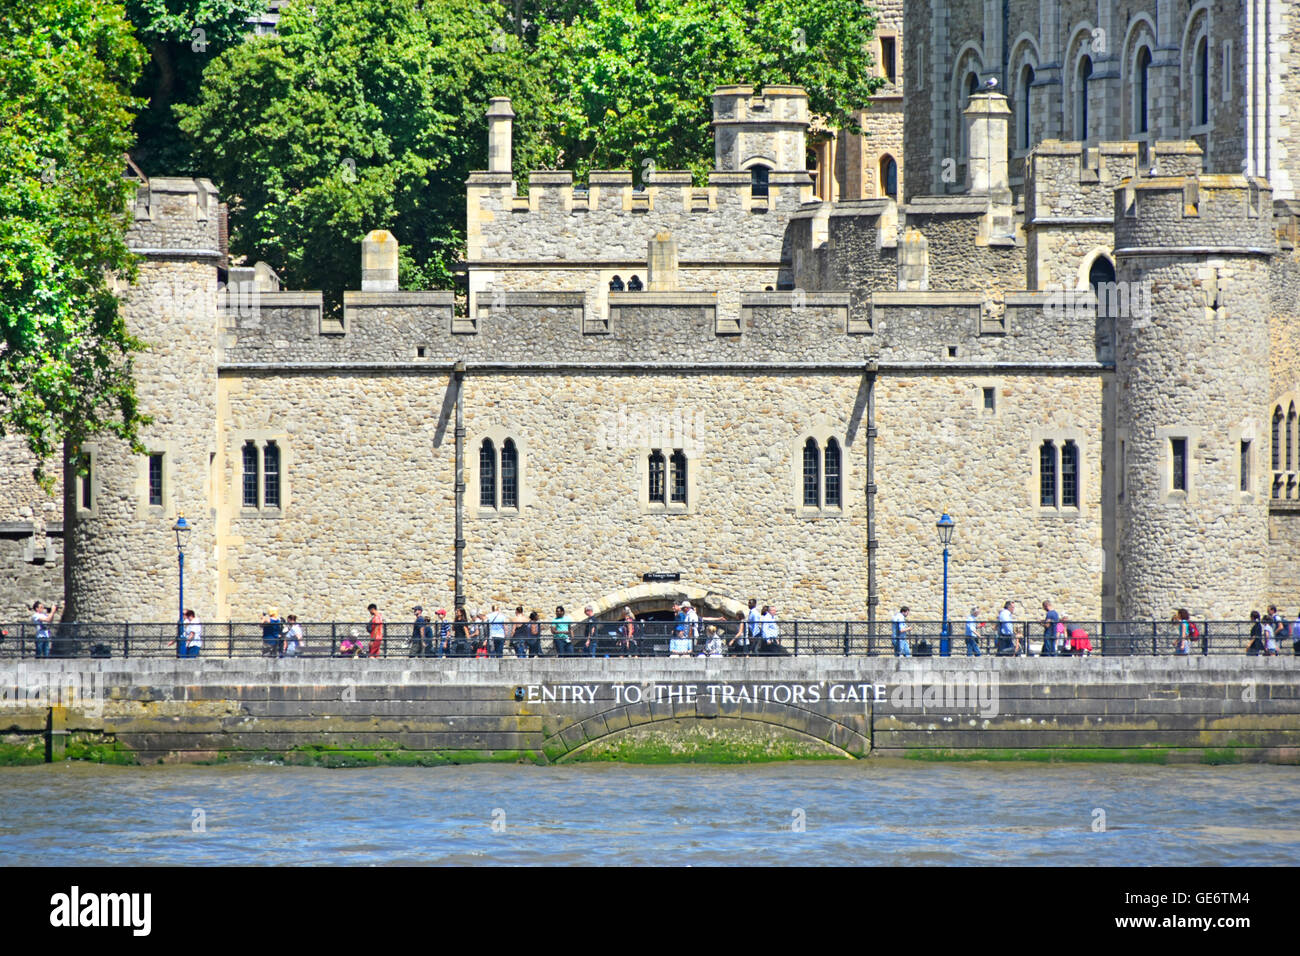 Sign for a water gate on River Thames for historical Traitors' Gate that gave direct waterborne access to historic - Stock Image